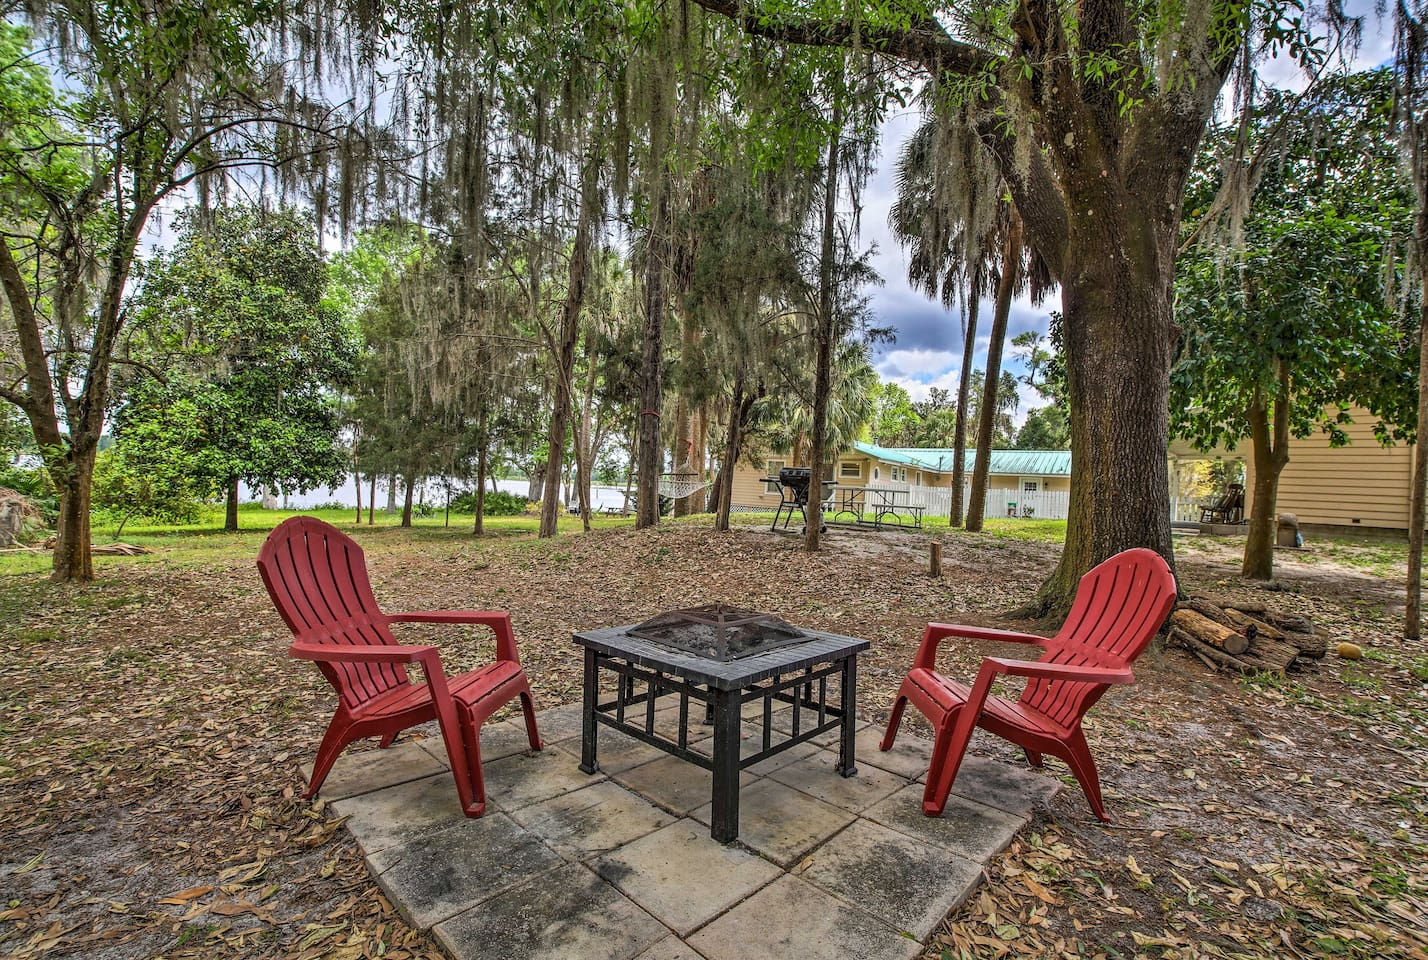 This charming vacation rental property overlooks beautiful Lake Rousseau!